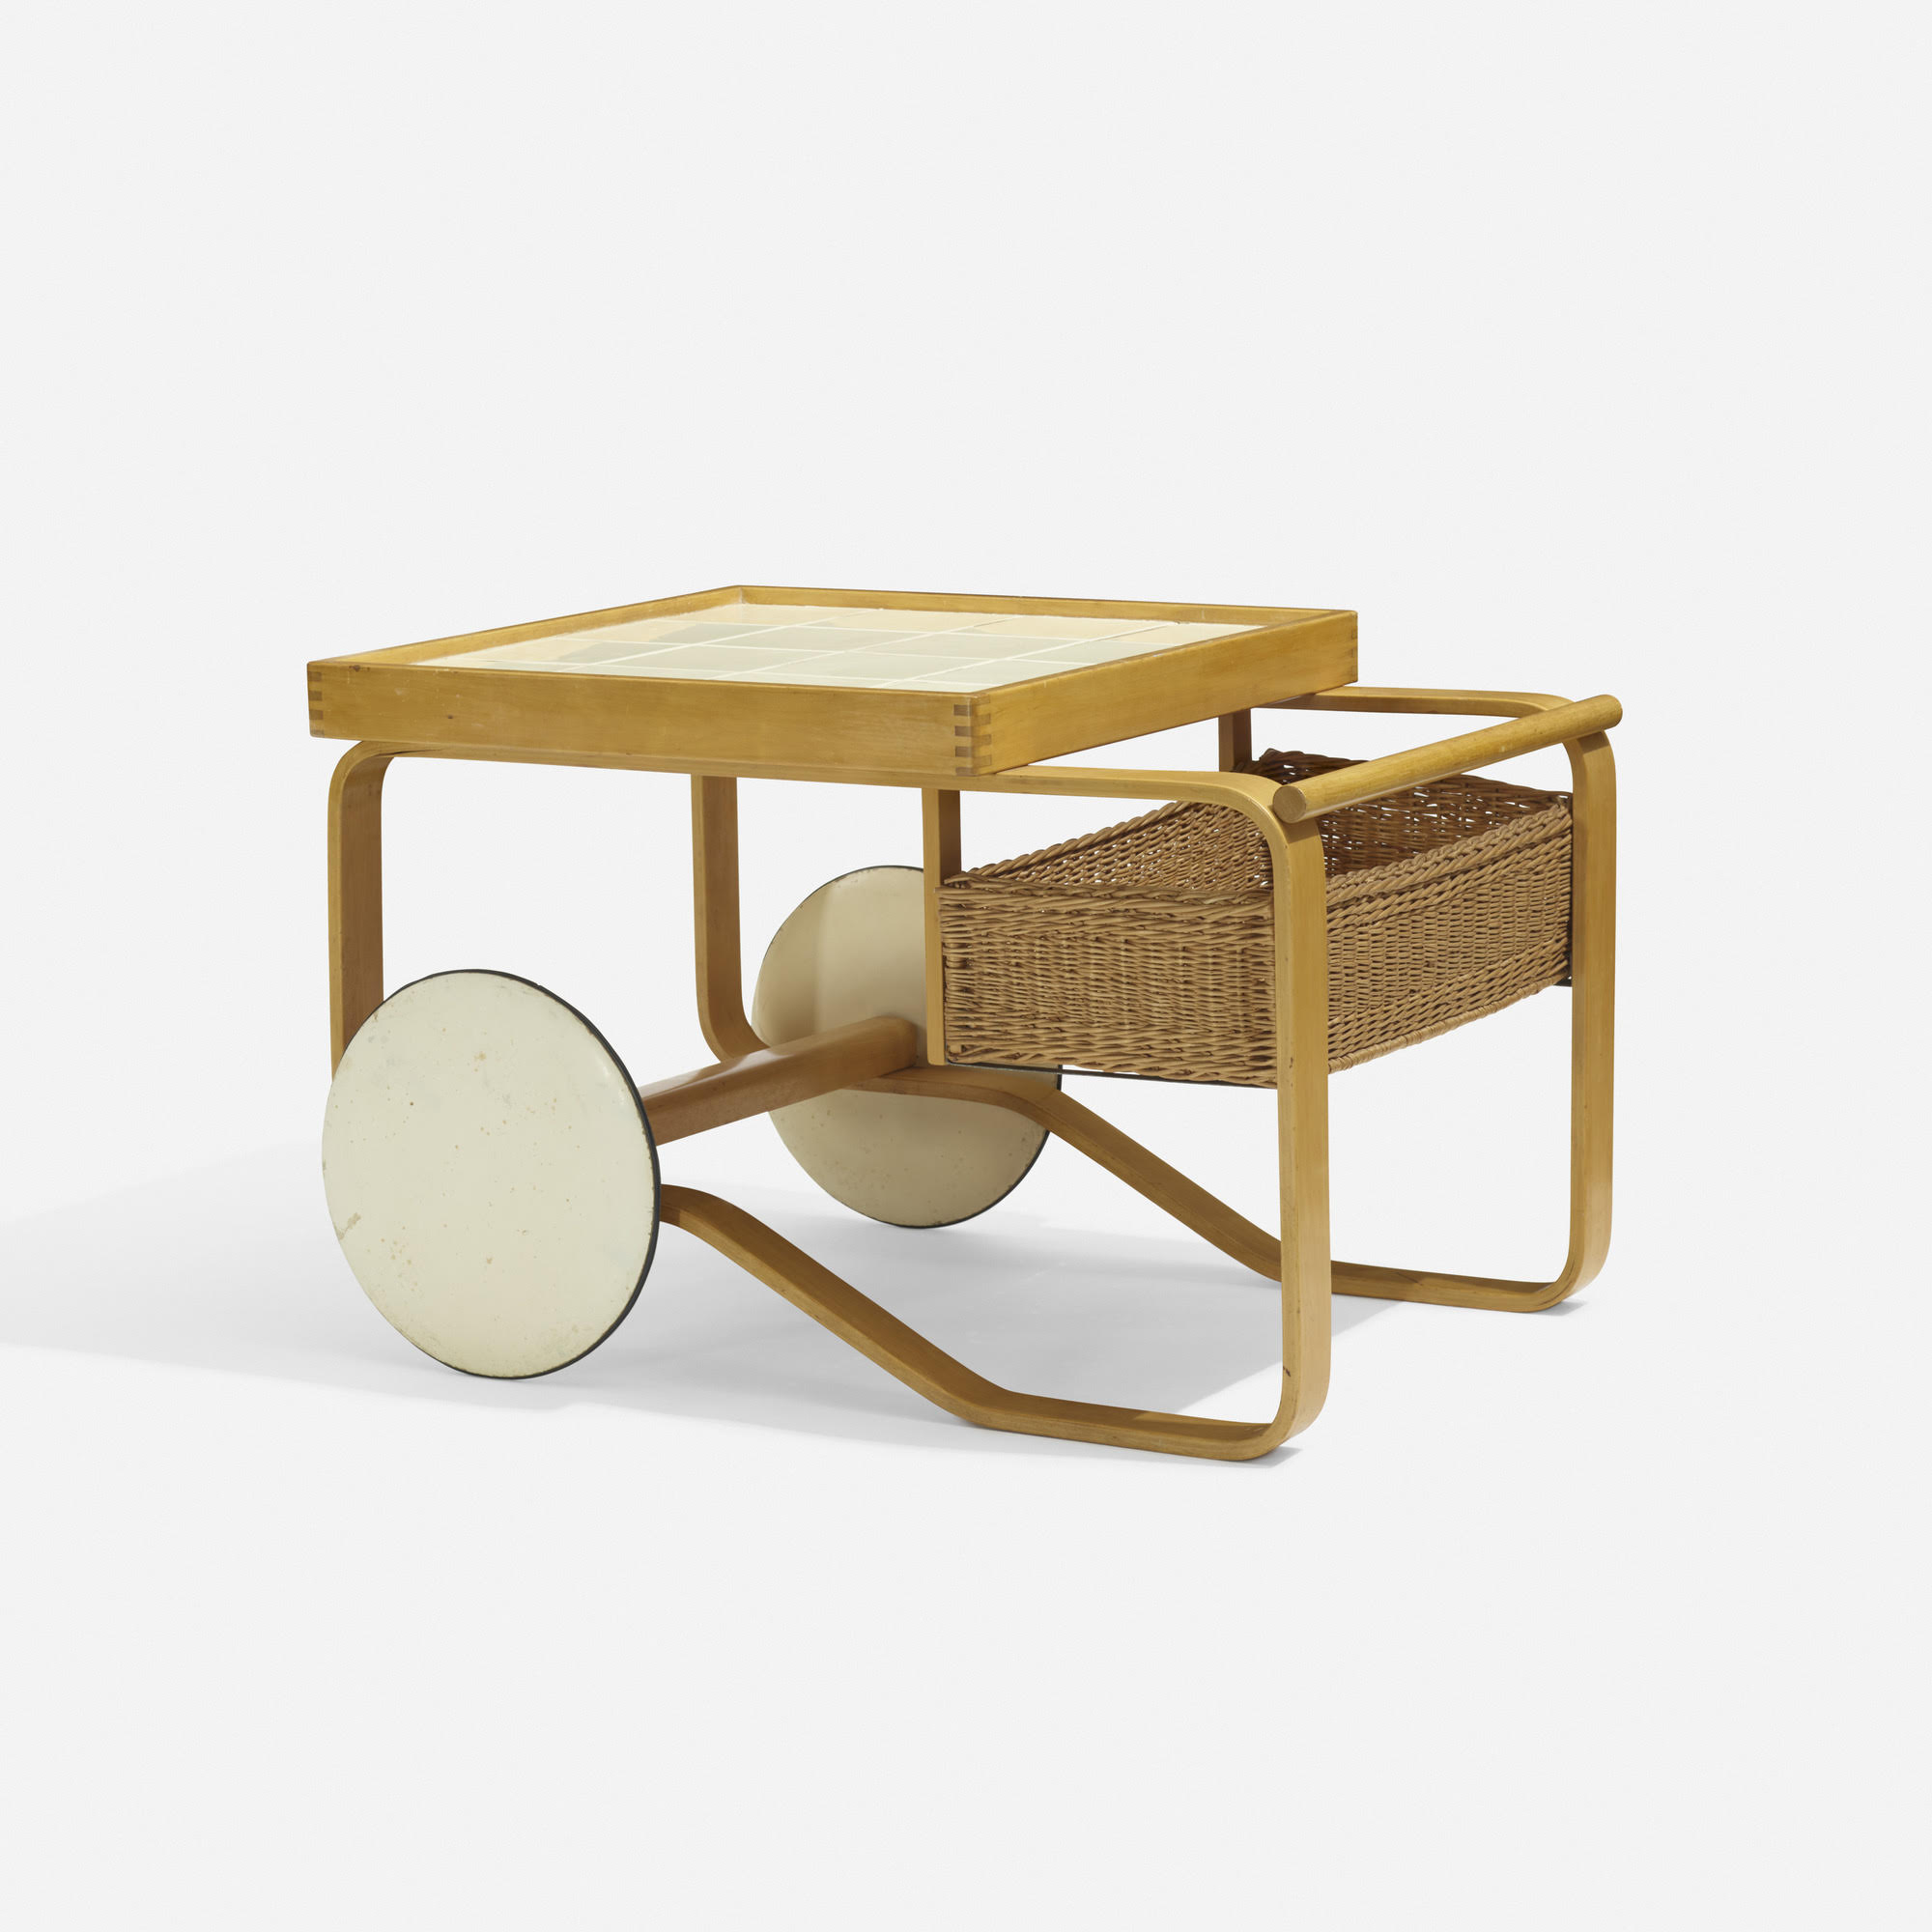 Alvar Aalto Tea Trolley   Price Upon Request. Email mylaoutpost@gmail.com  Artek Finland, 1937 birch, tile, rattan, lacqueredwood, rubber 35½ w × 25½ d × 23 h in 90 × 65 × 58 cm